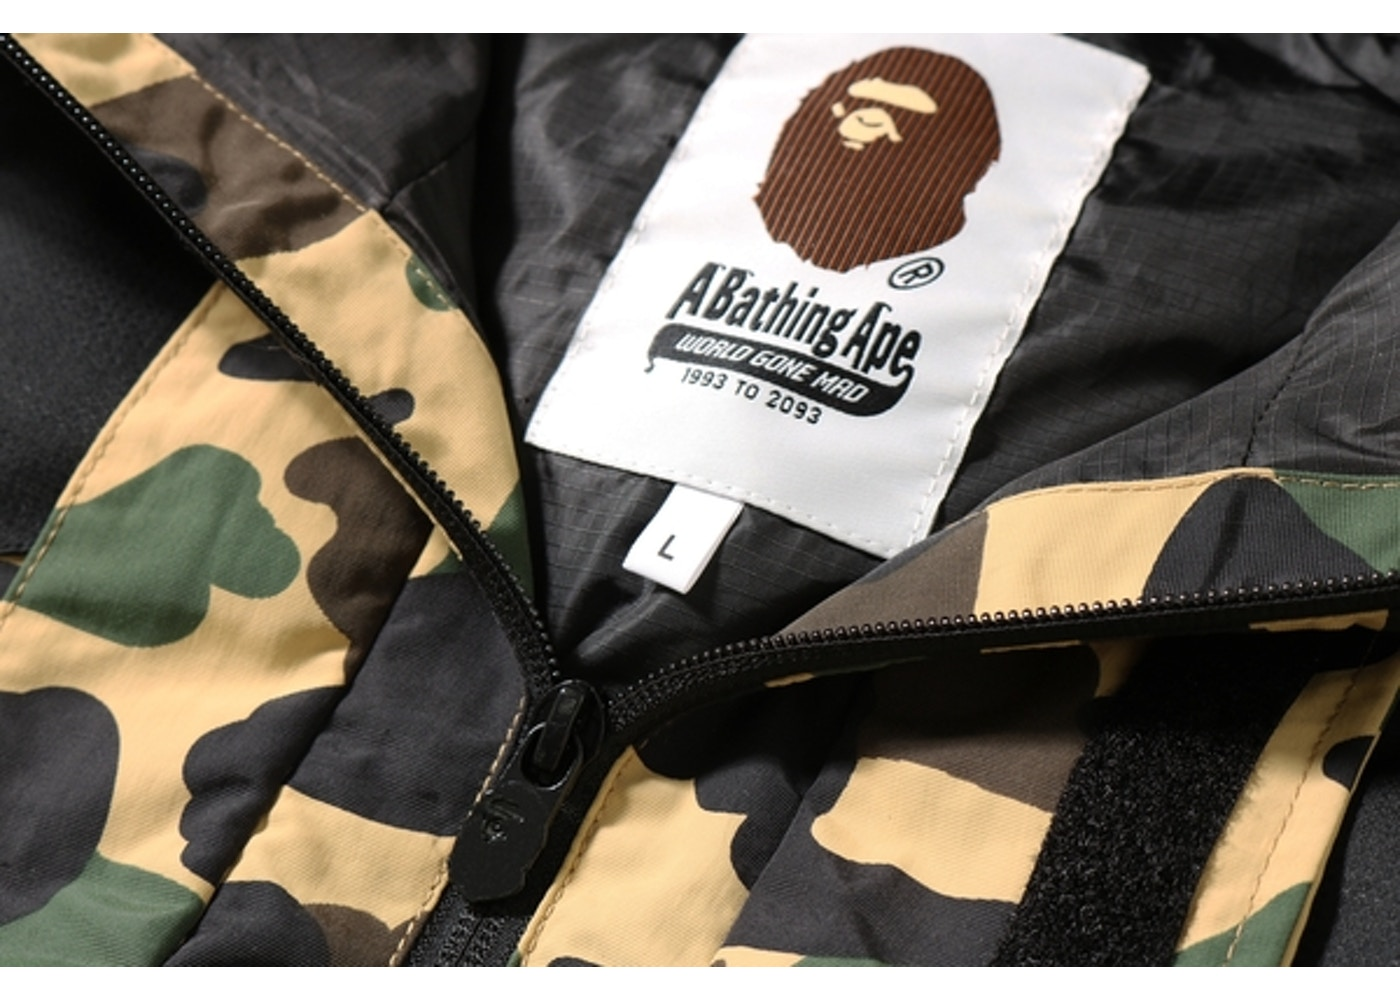 bf5145635 Streetwear - Bape Jackets - New Highest Bids